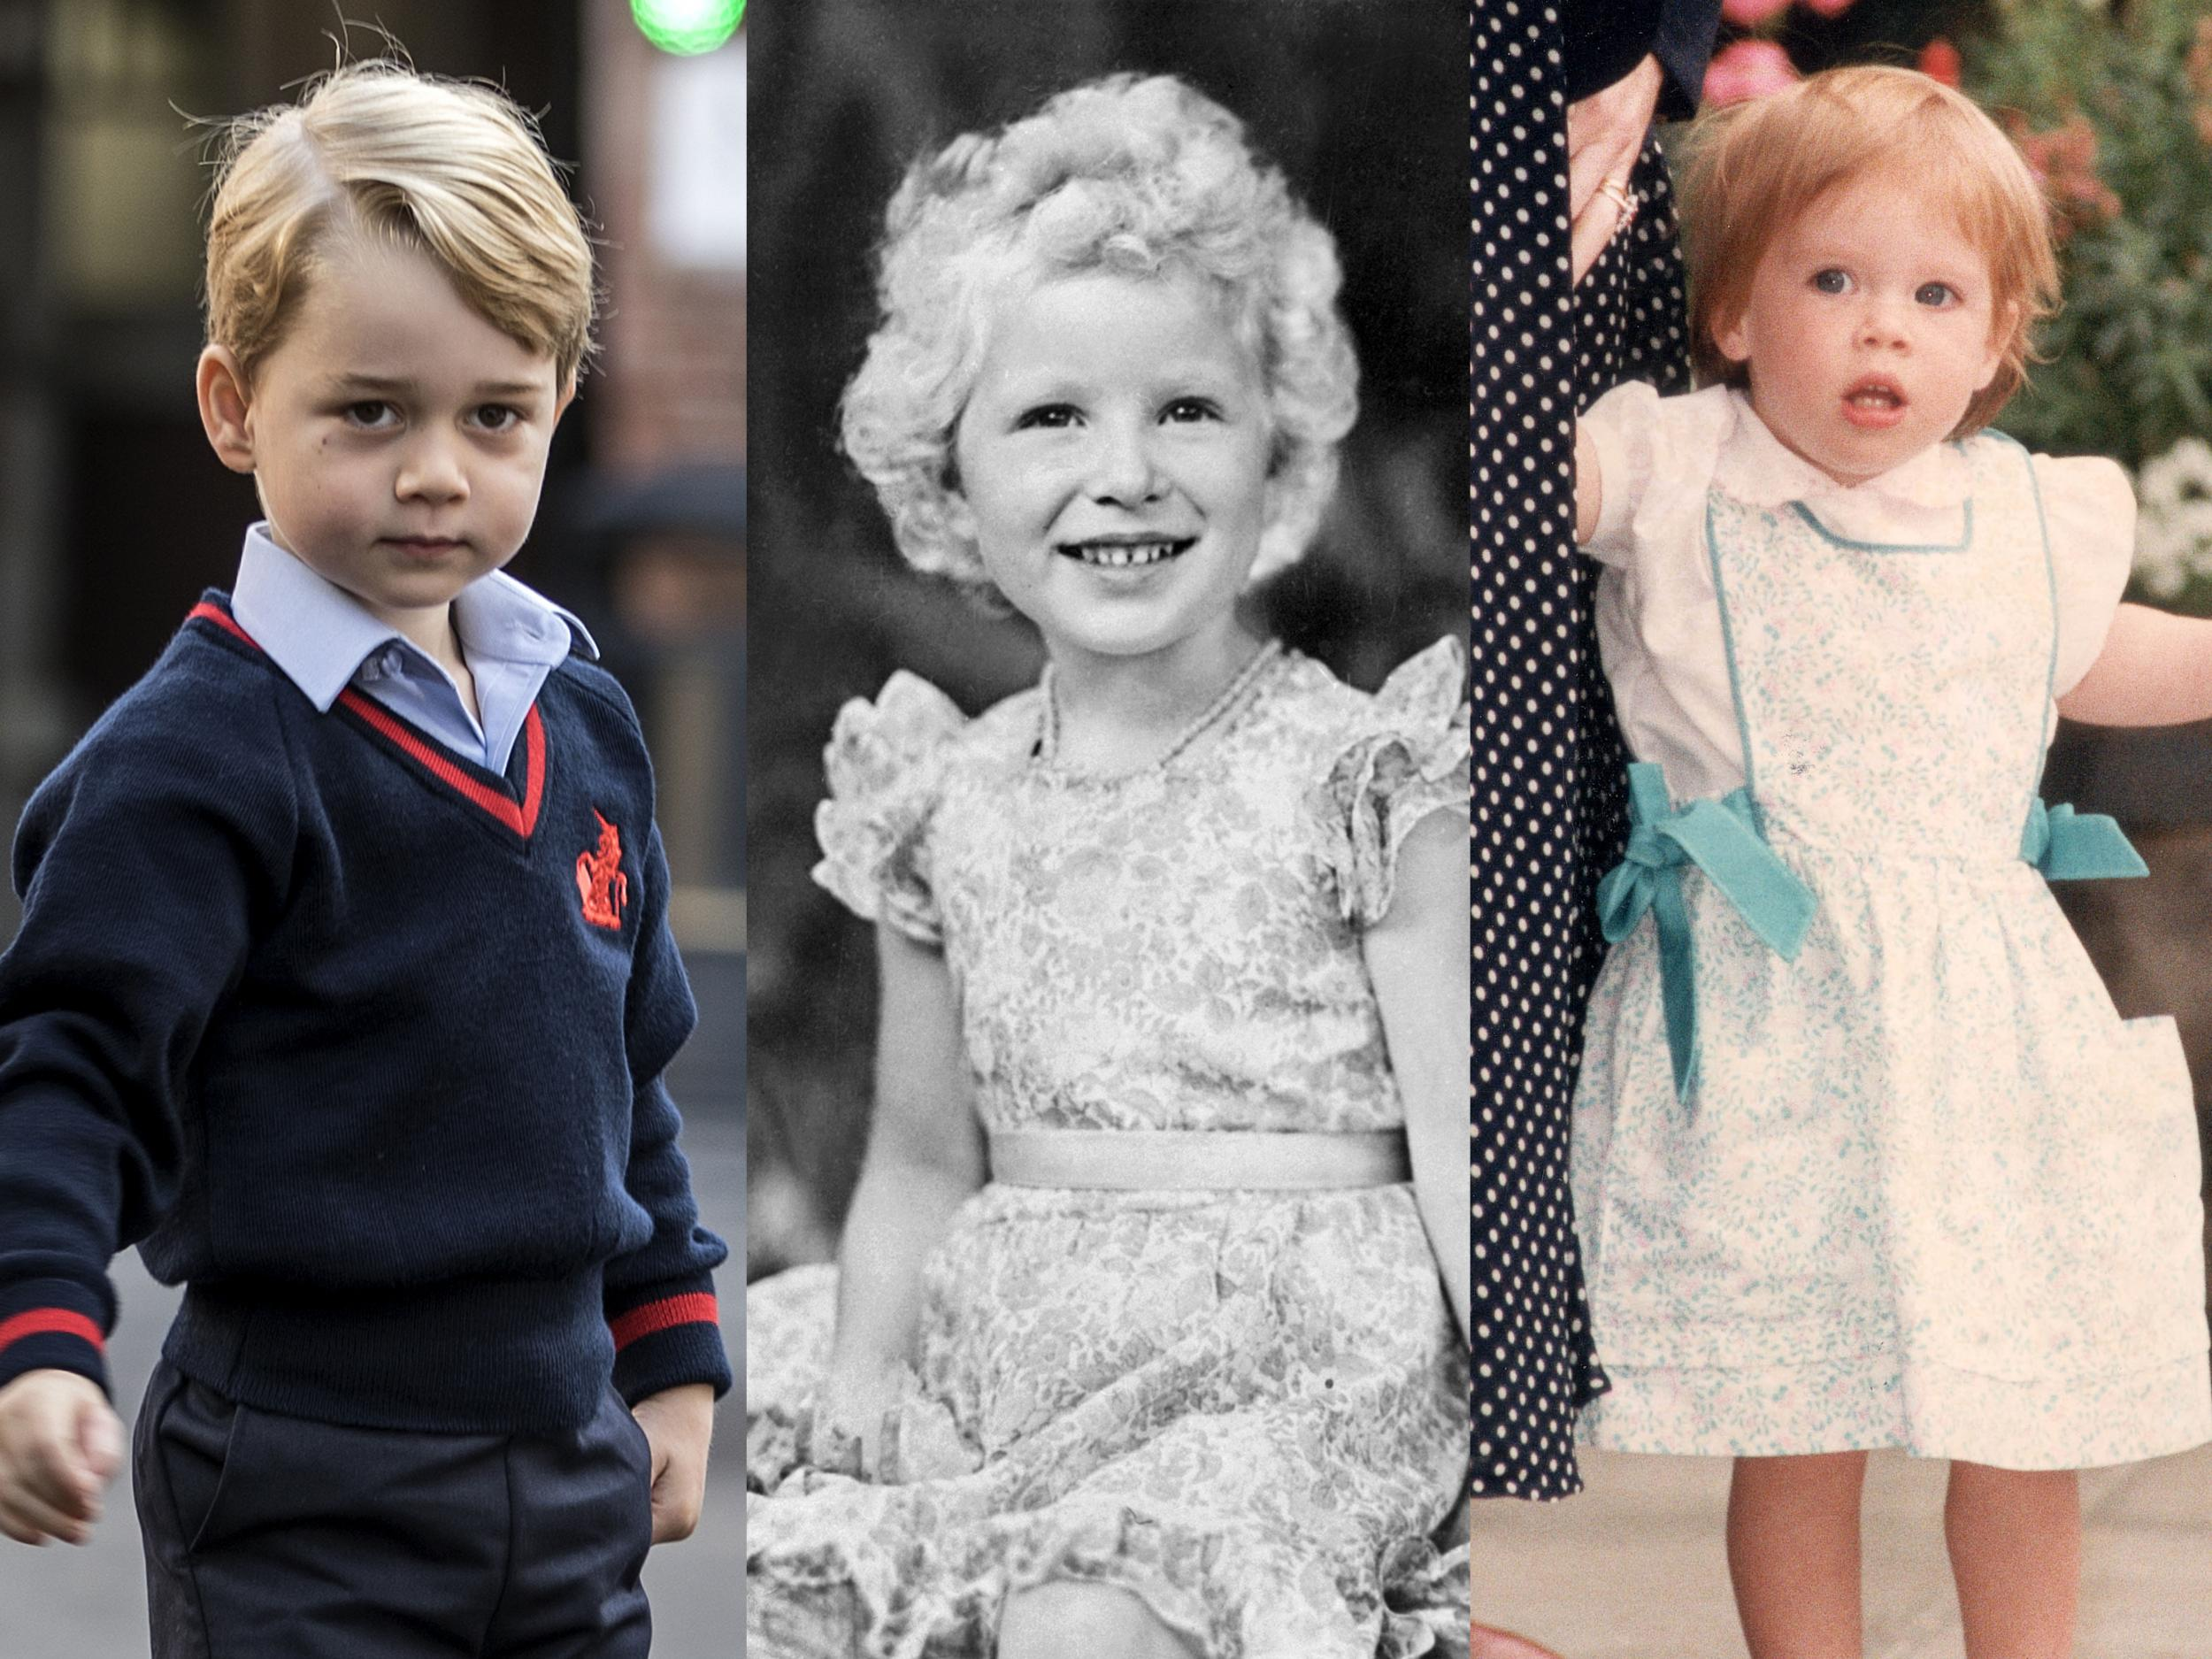 prince harry birthday 16 pictures of the royal family when they were children the independent prince harry birthday 16 pictures of